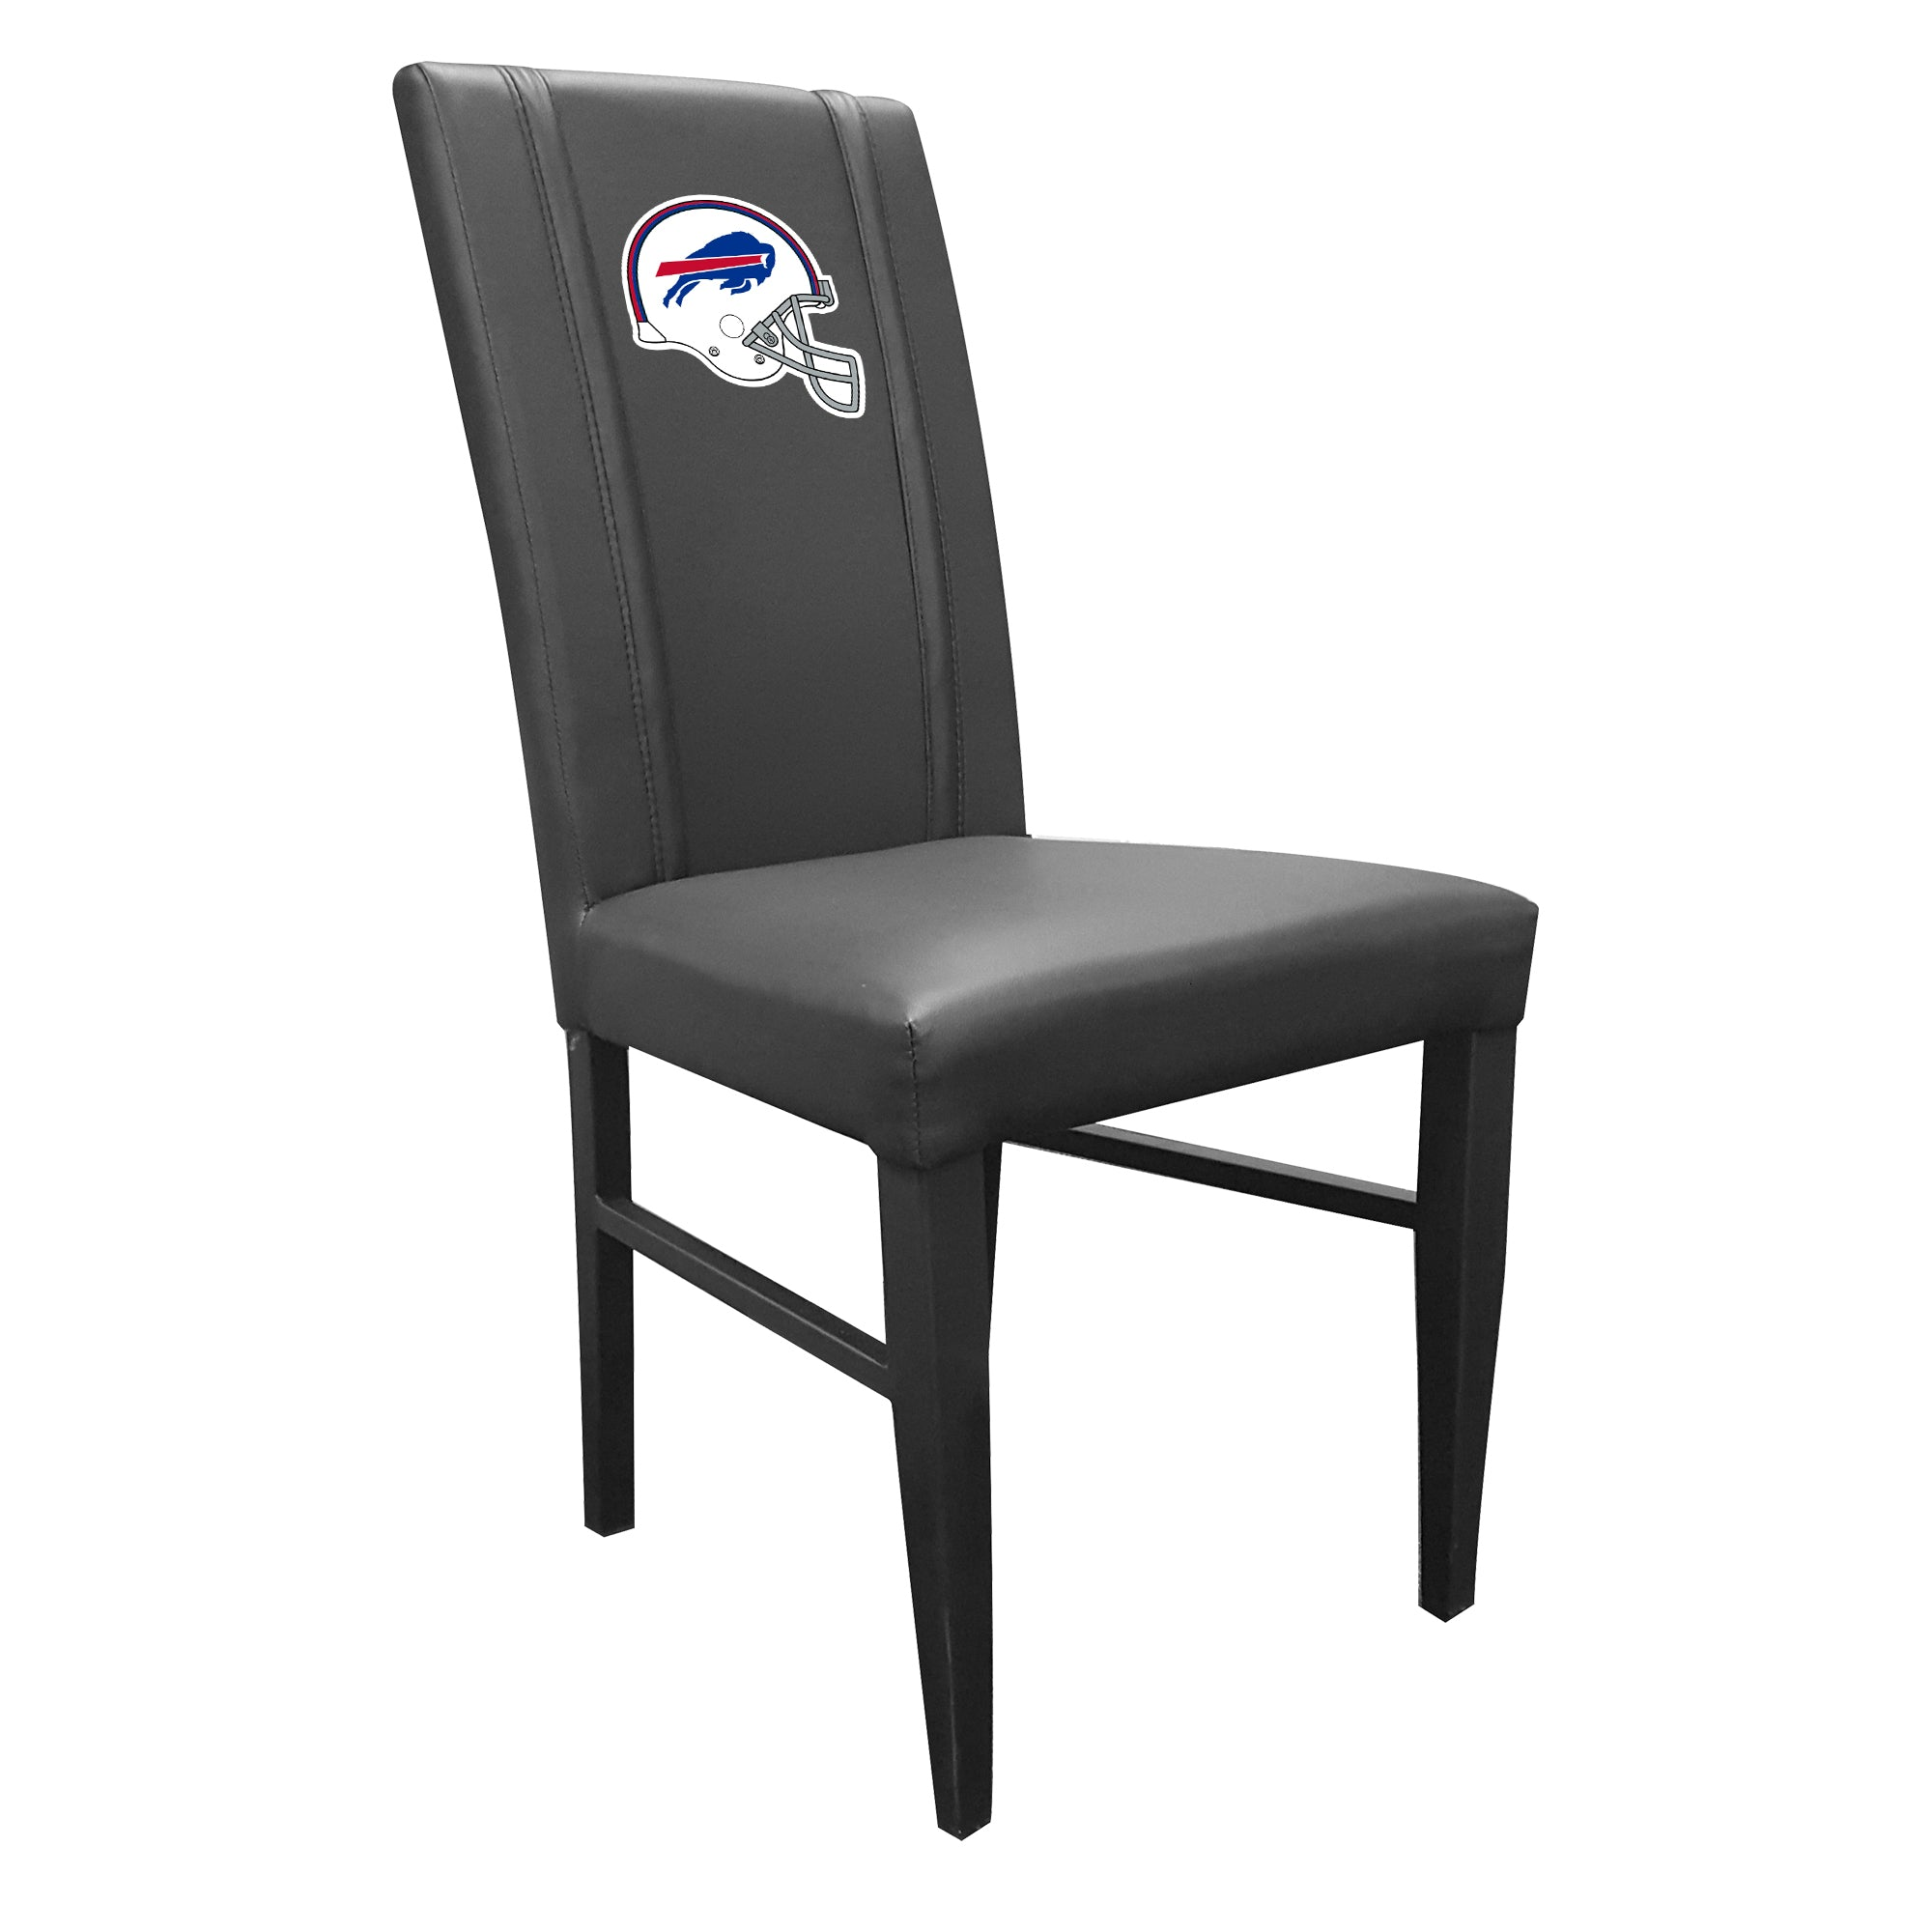 Side Chair 2000 with  Buffalo Bills Helmet Logo